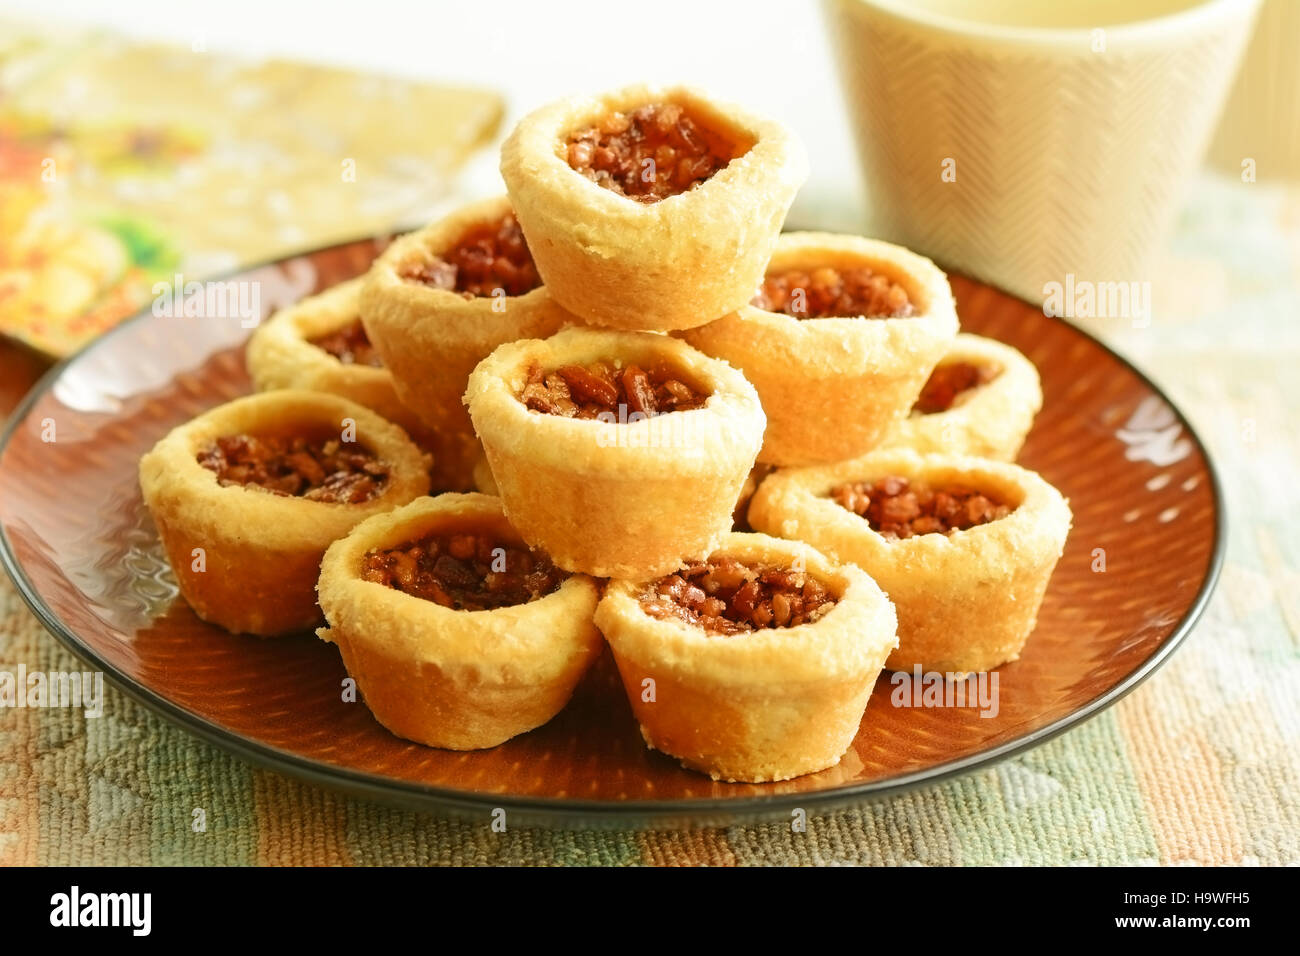 Delicious little pecan tarts with flaky pastry and coffee in horizontal format - Stock Image